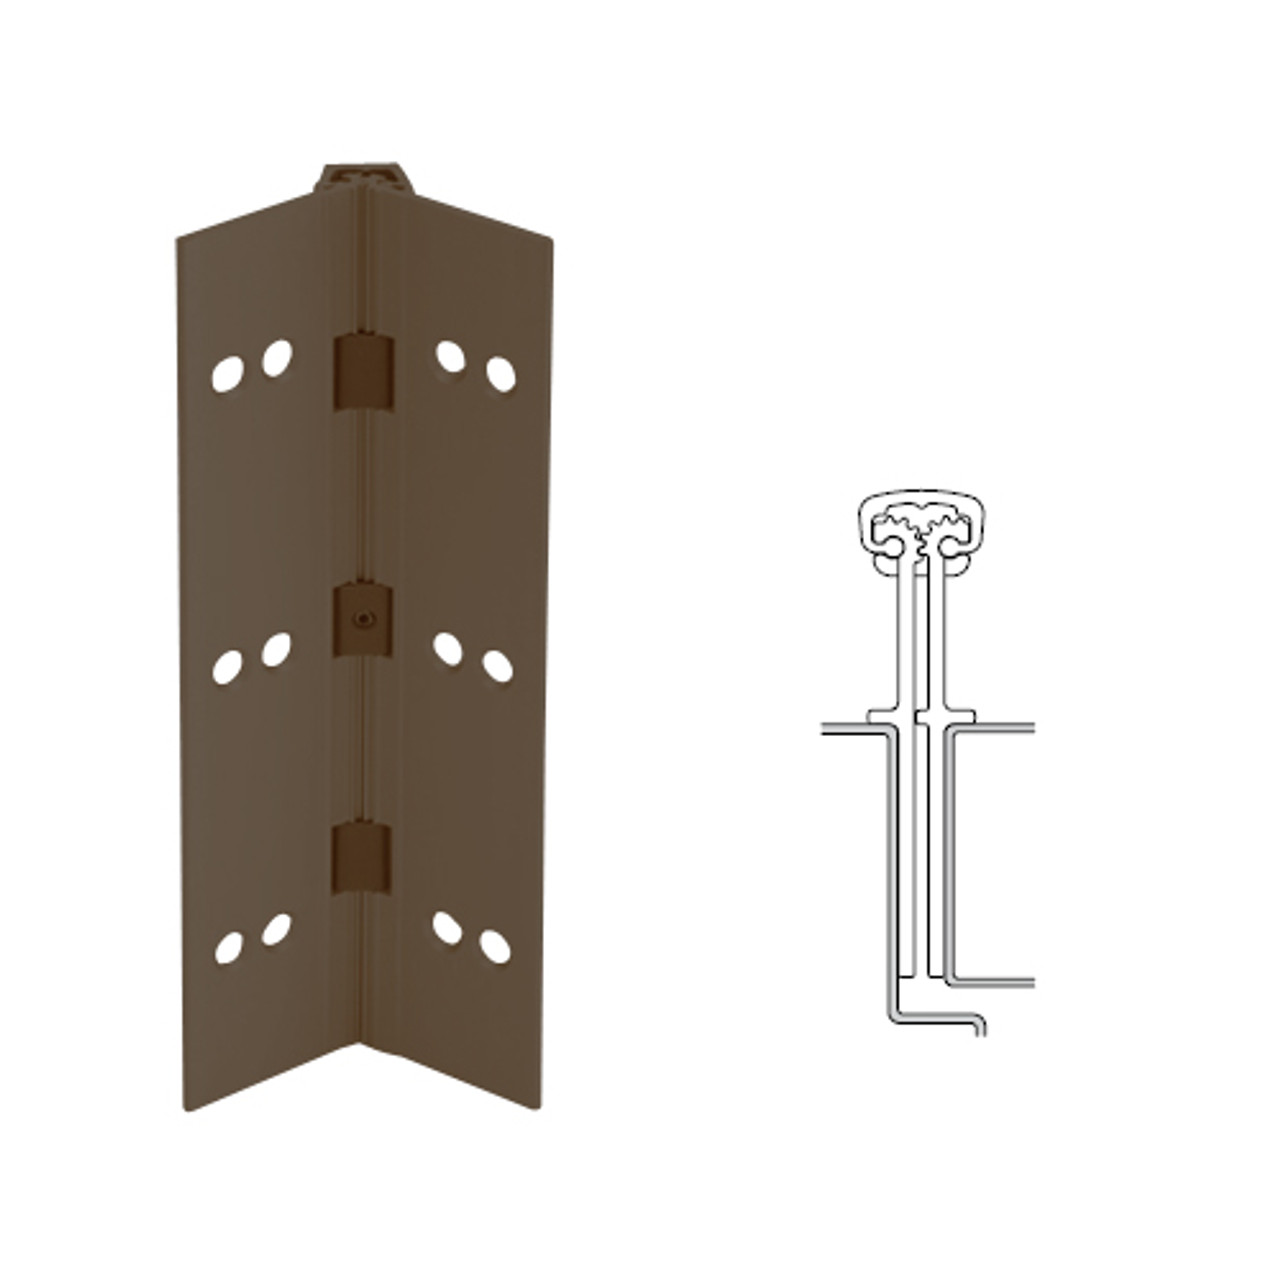 040XY-313AN-95-WD IVES Full Mortise Continuous Geared Hinges with Wood Screws in Dark Bronze Anodized